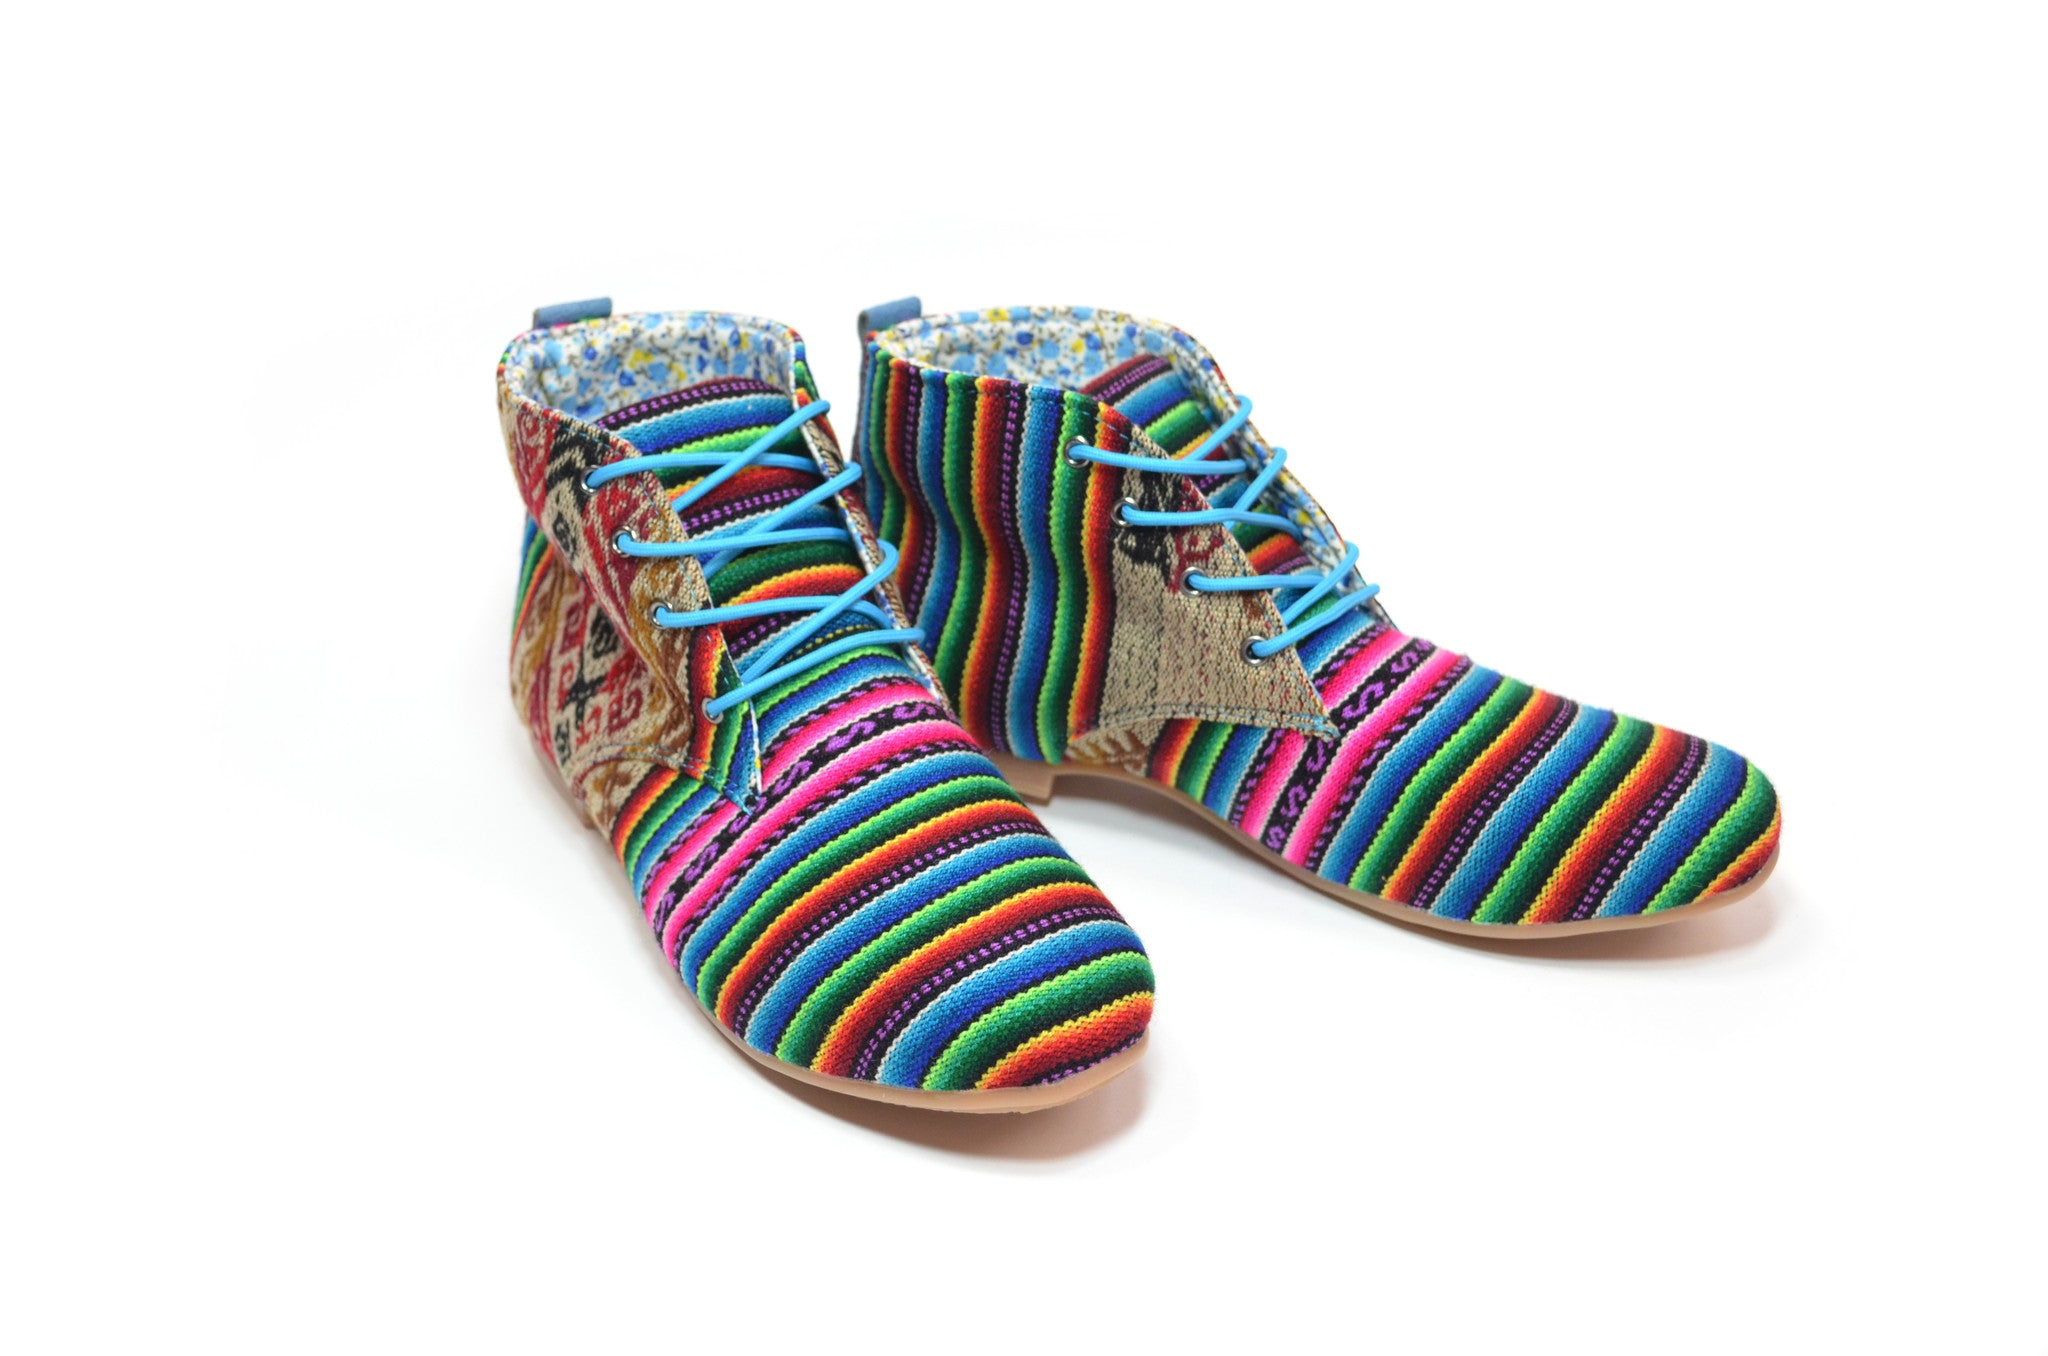 WOVEN ANKLE BOOT - RAINBOW RHOMBUS